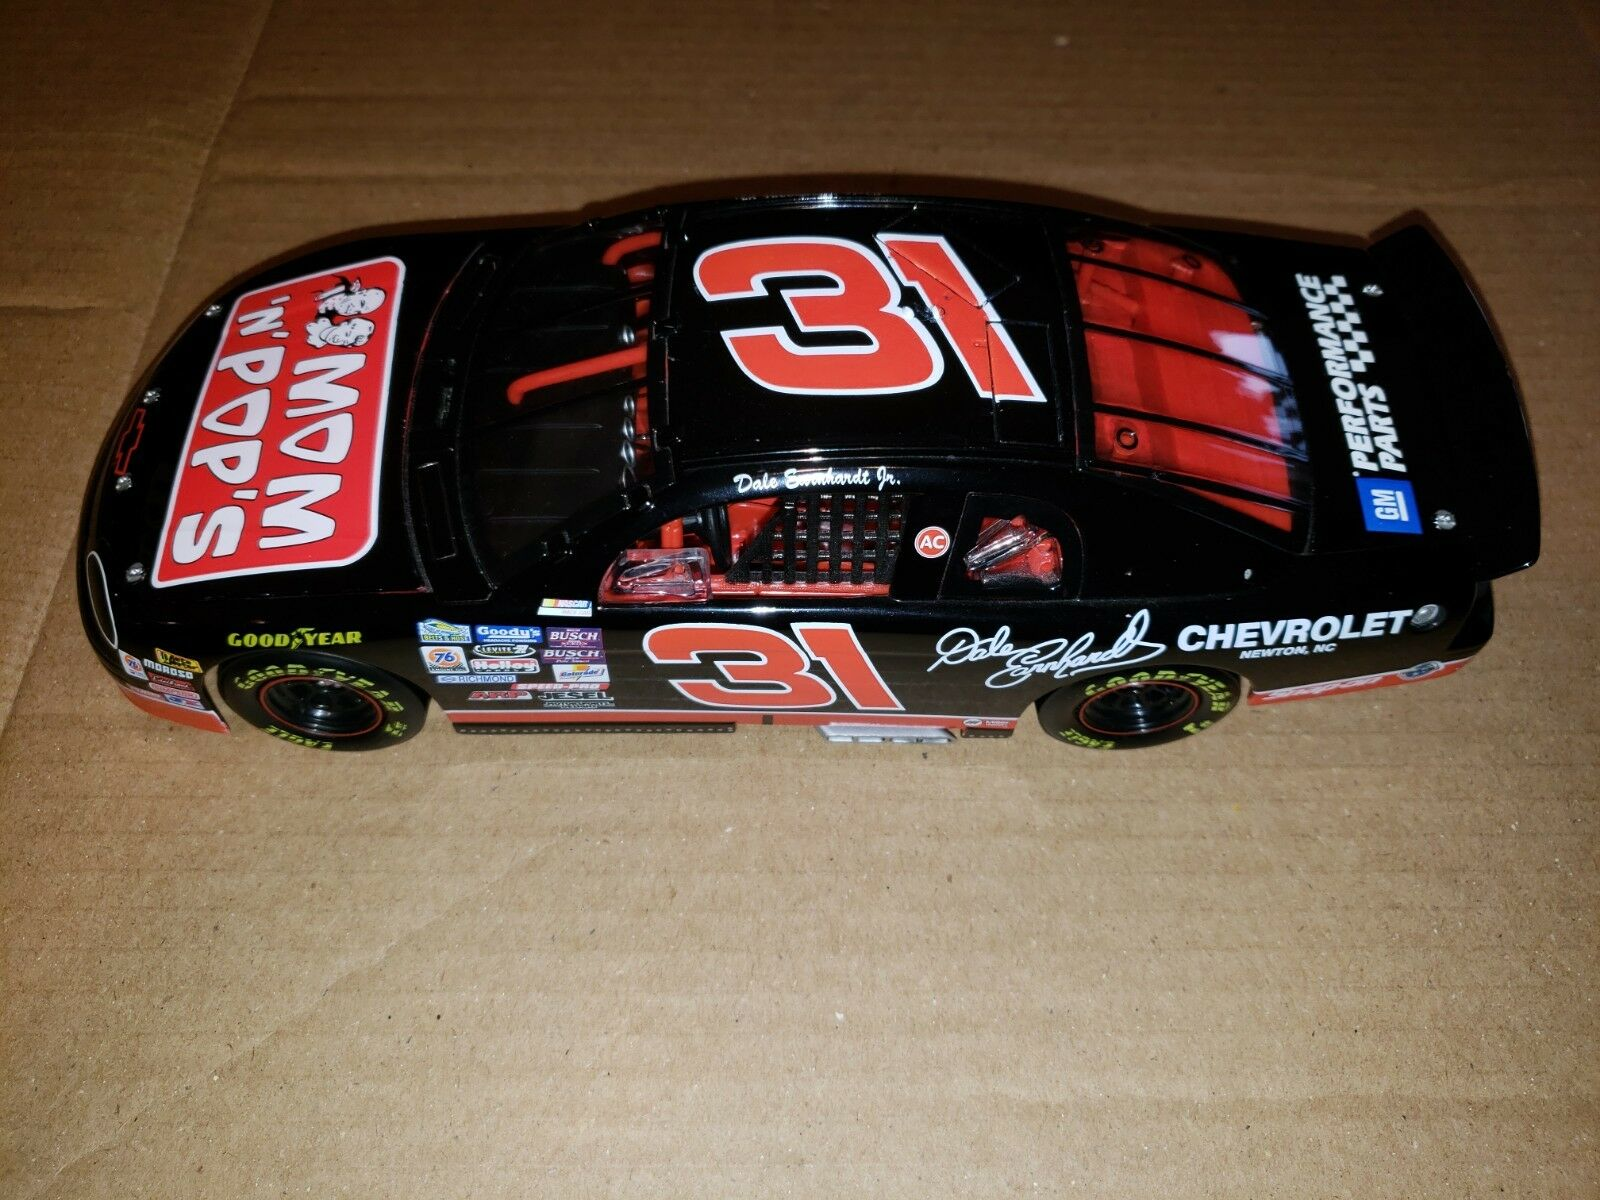 1 18 Scale Dale Earnhardt Jr. Action Action Action Mom 'n' Pop 1996 Monte Carlo W189635215 bffcb0